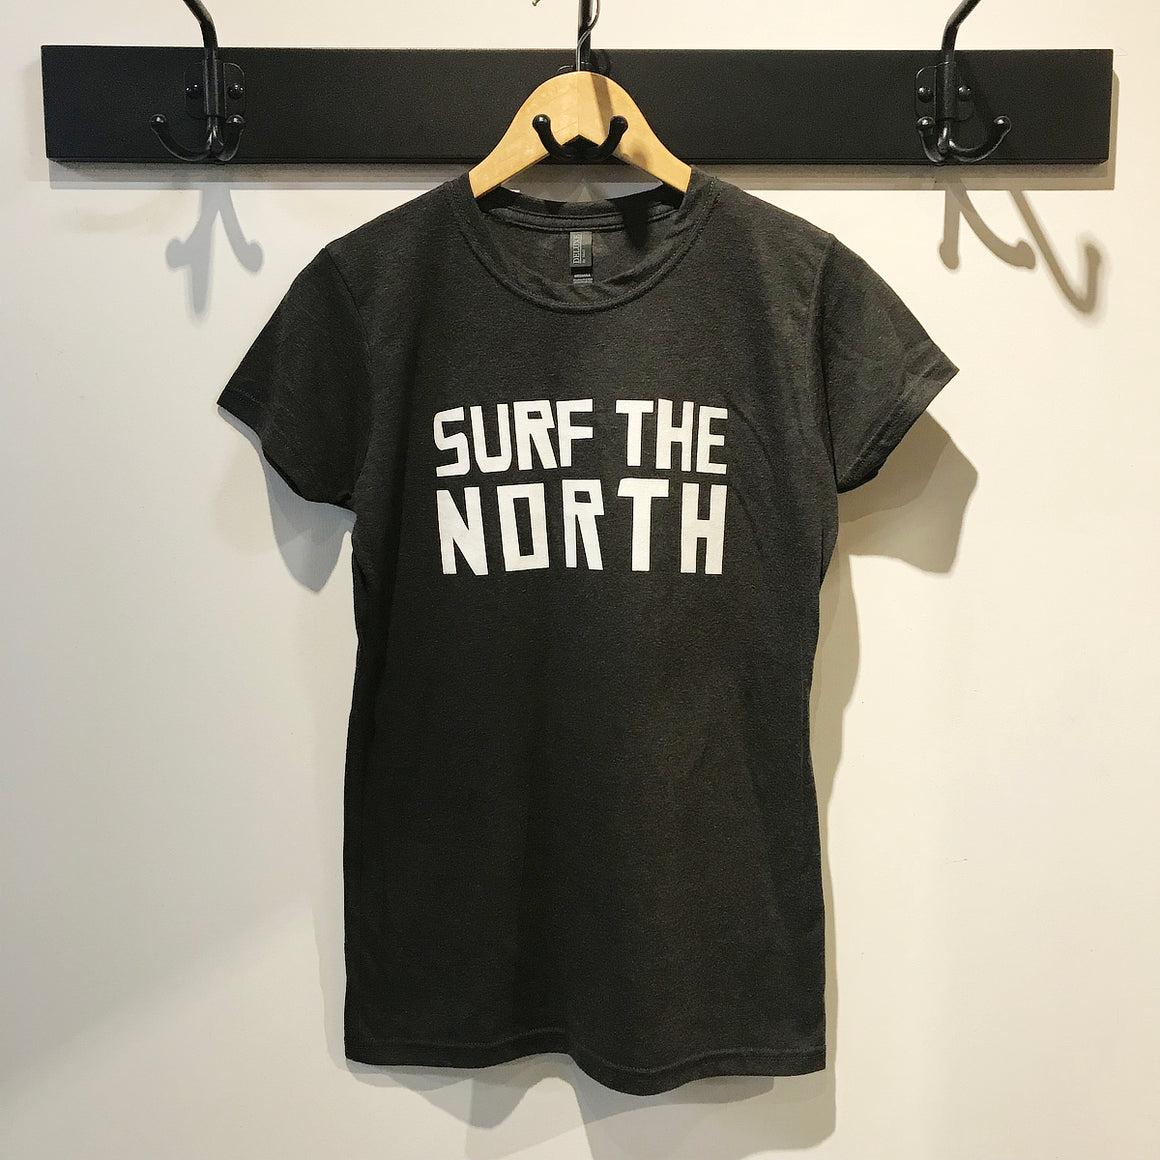 'SURF THE NORTH' T-Shirt by Surf Ontario - Womens